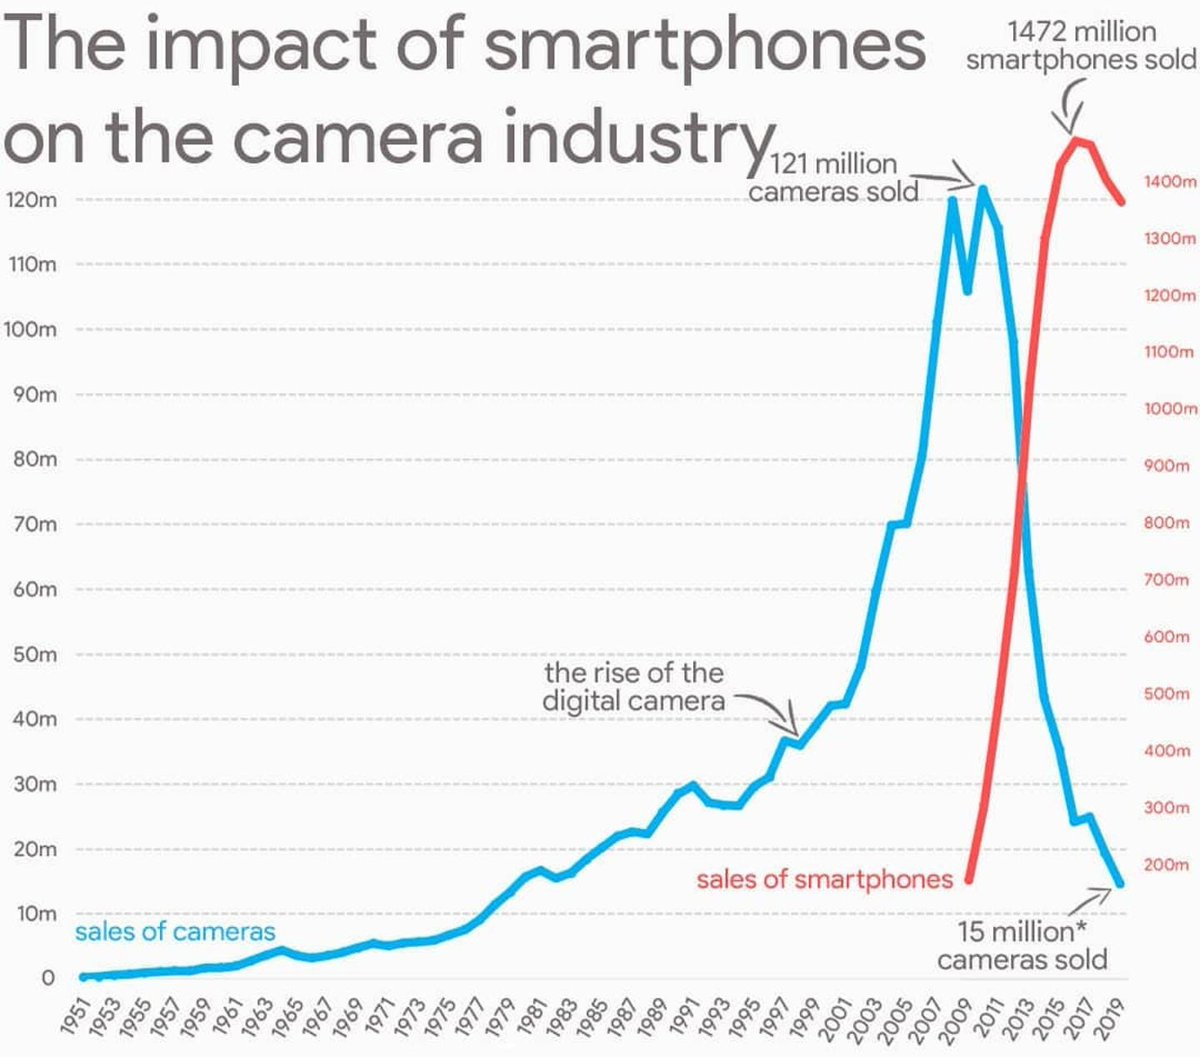 Impact of smartphones on the camera industry<br>http://pic.twitter.com/kcz4LjEjZK